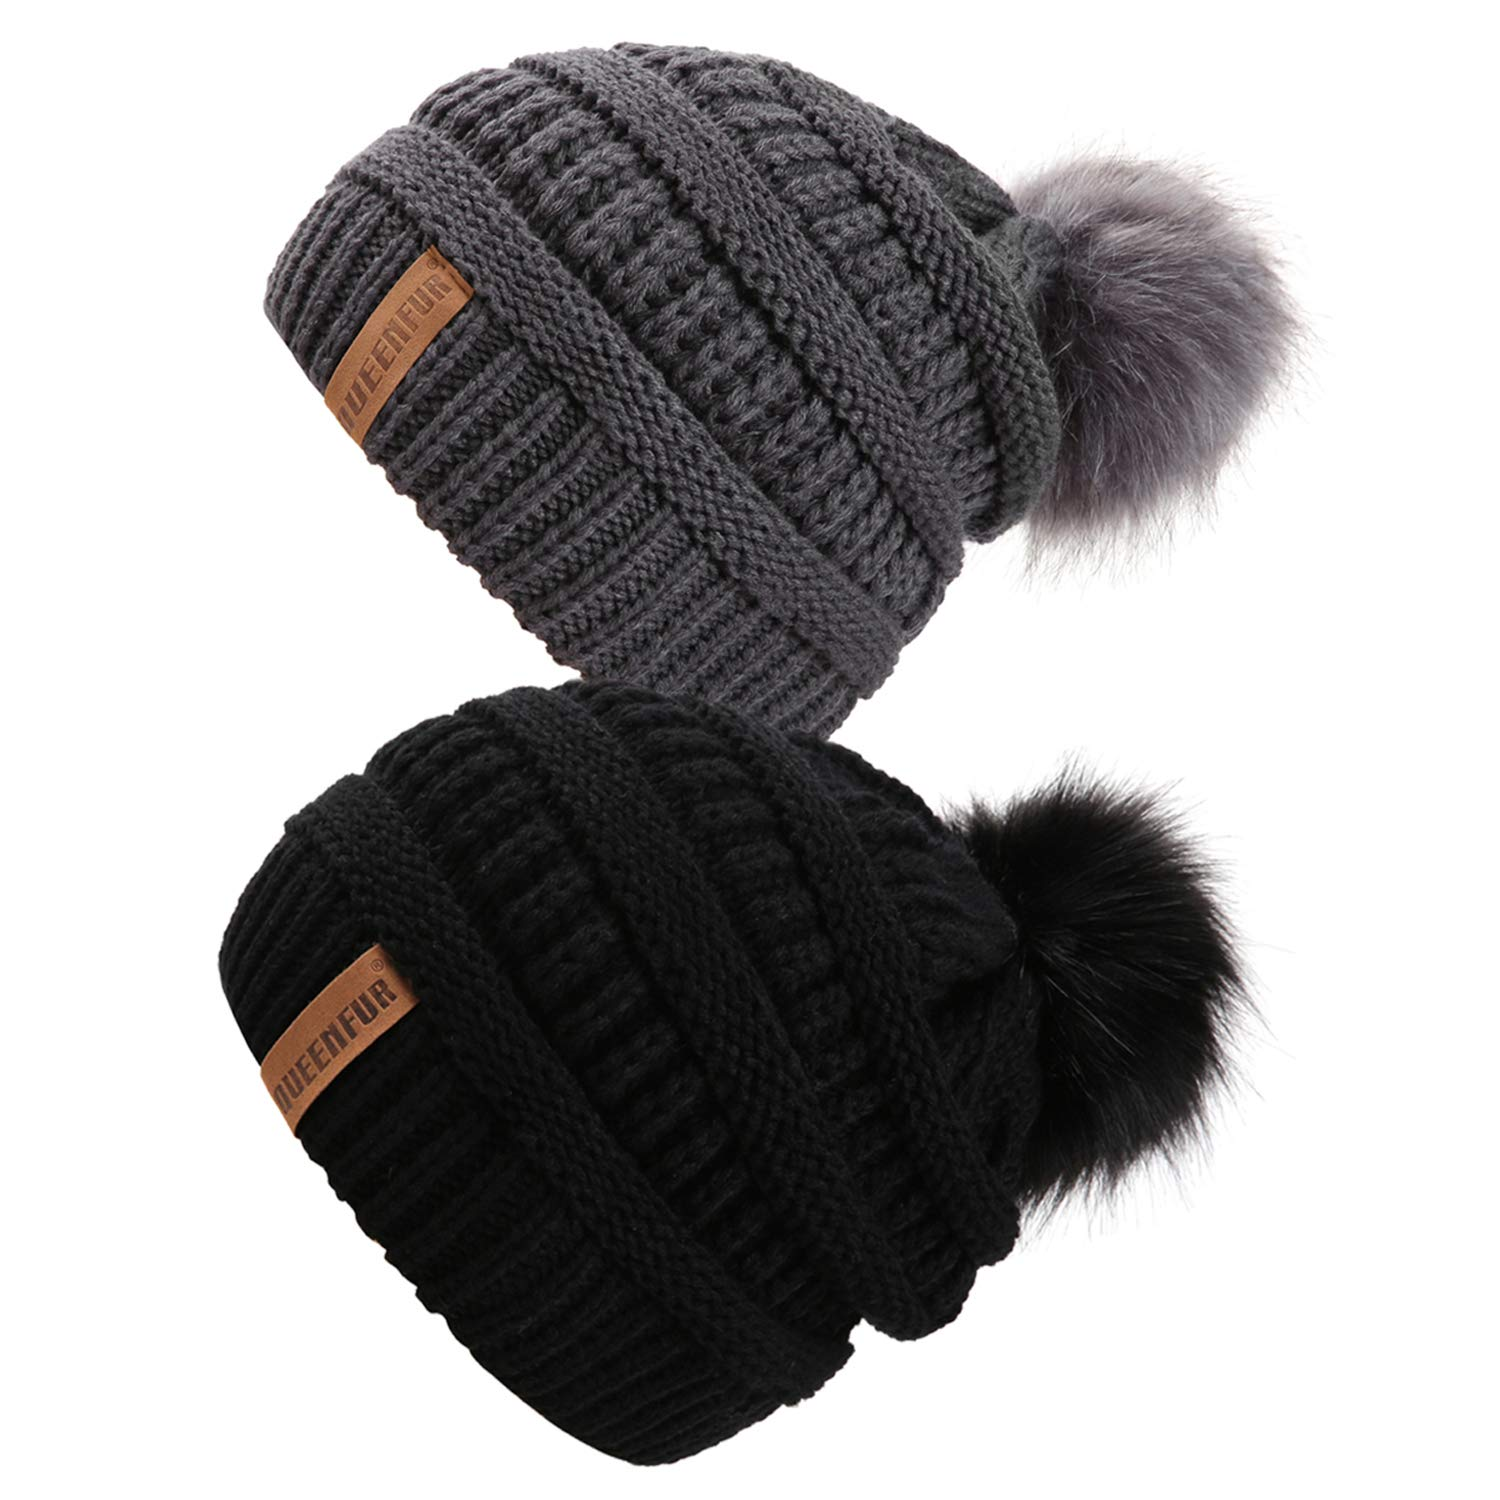 bb9393ddfd79e Queenfur Knit Slouchy Beanie for Women Thick Baggy Hat Faux Fur Pompom Winter  Hat (Black Dark Grey 2Pcs)  Amazon.ca  Clothing   Accessories